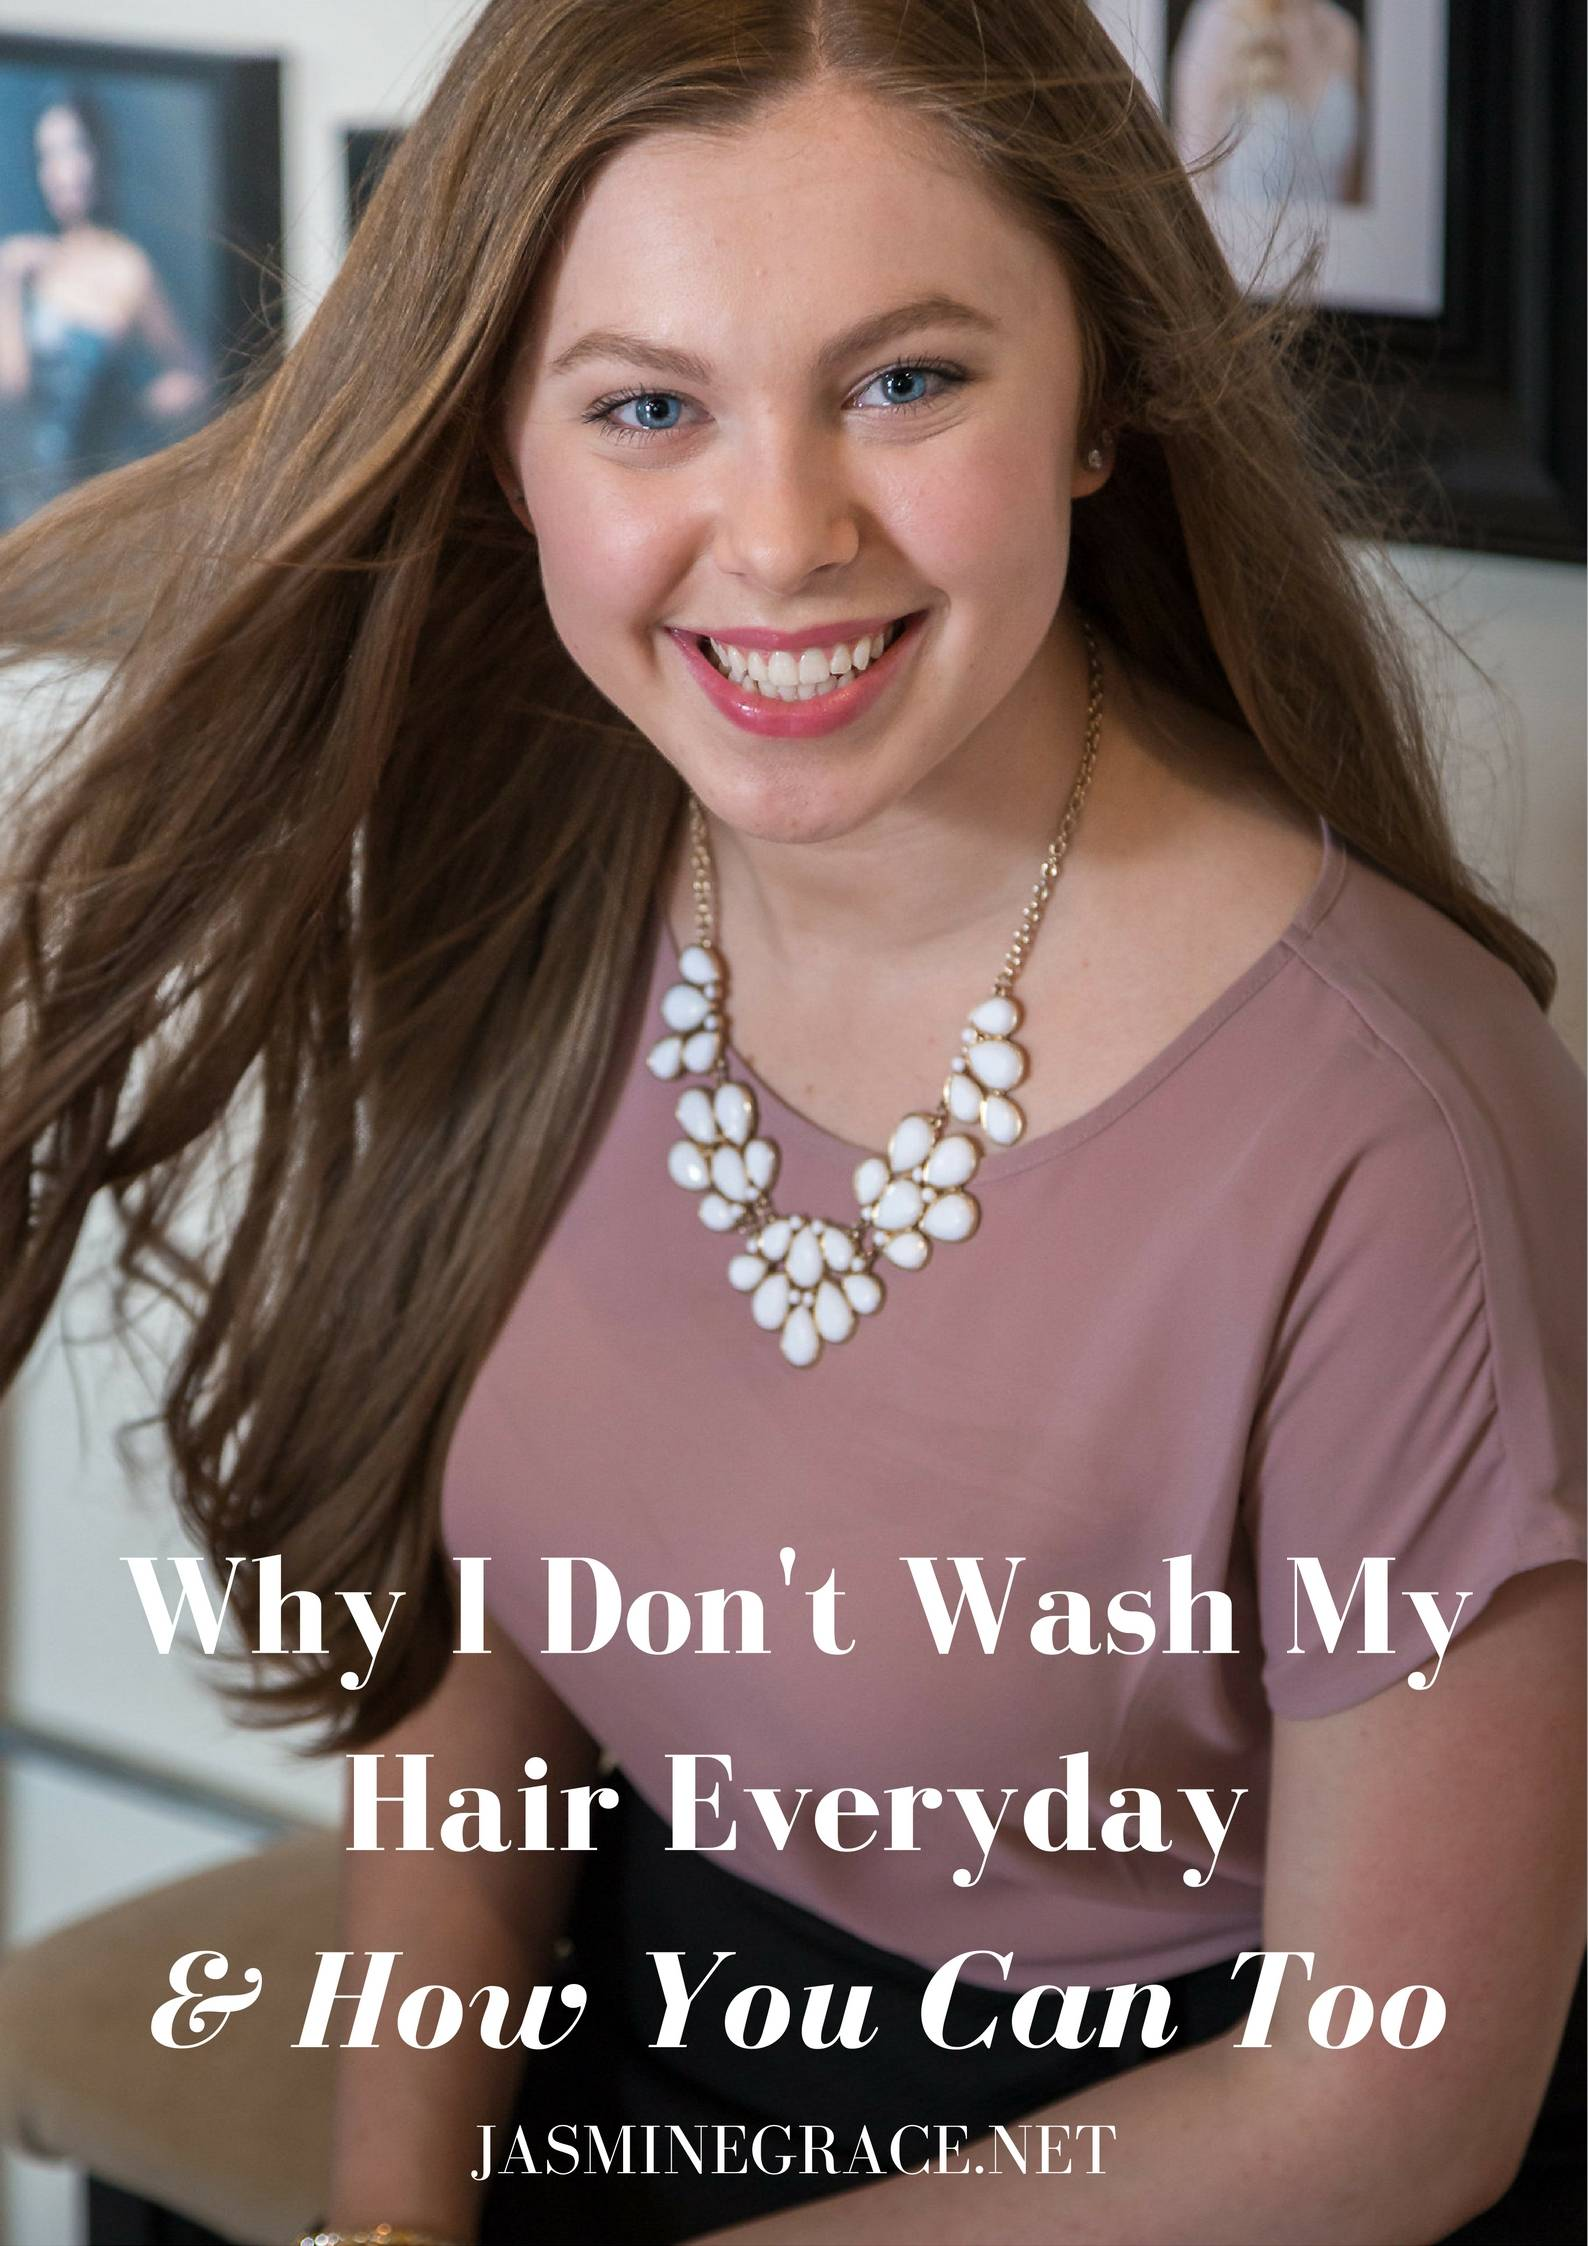 Why I Don't Wash My Hair Everyday & How You Can Too